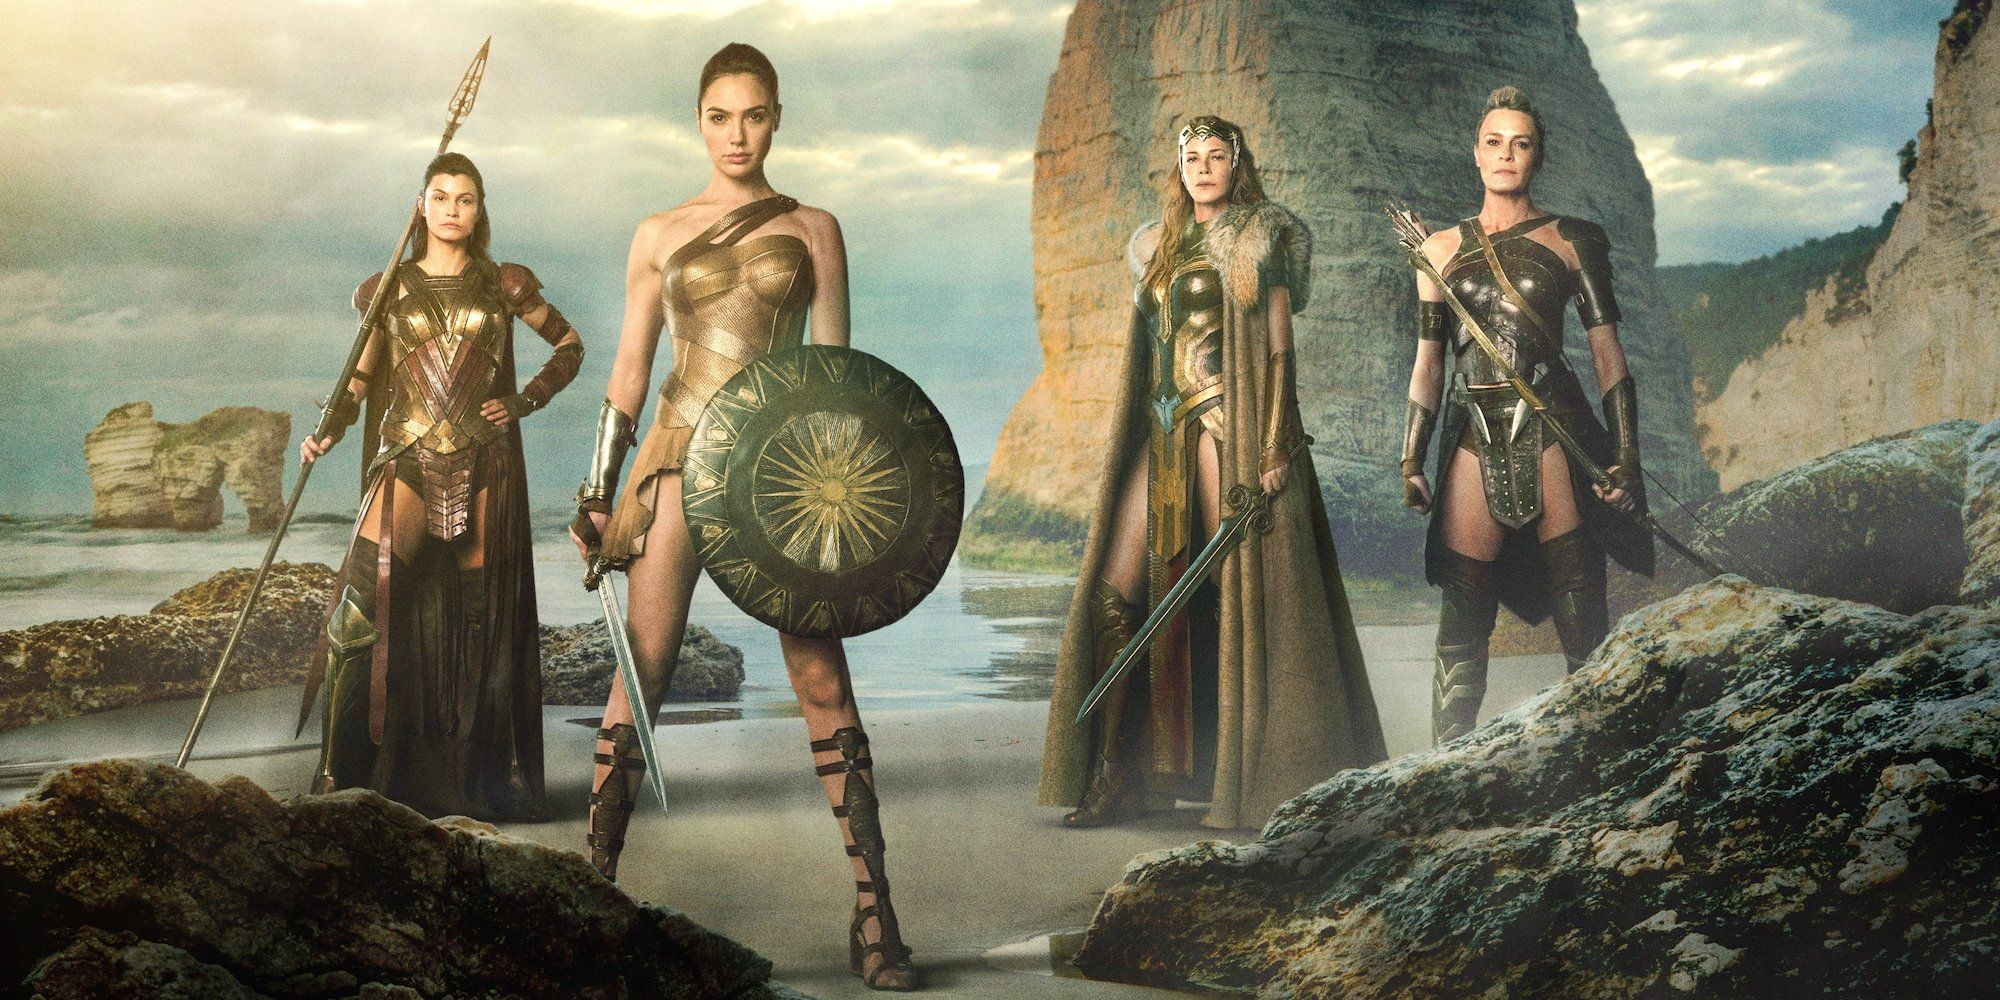 Animated Wonder Woman Spinoff TV Show Being Discussed